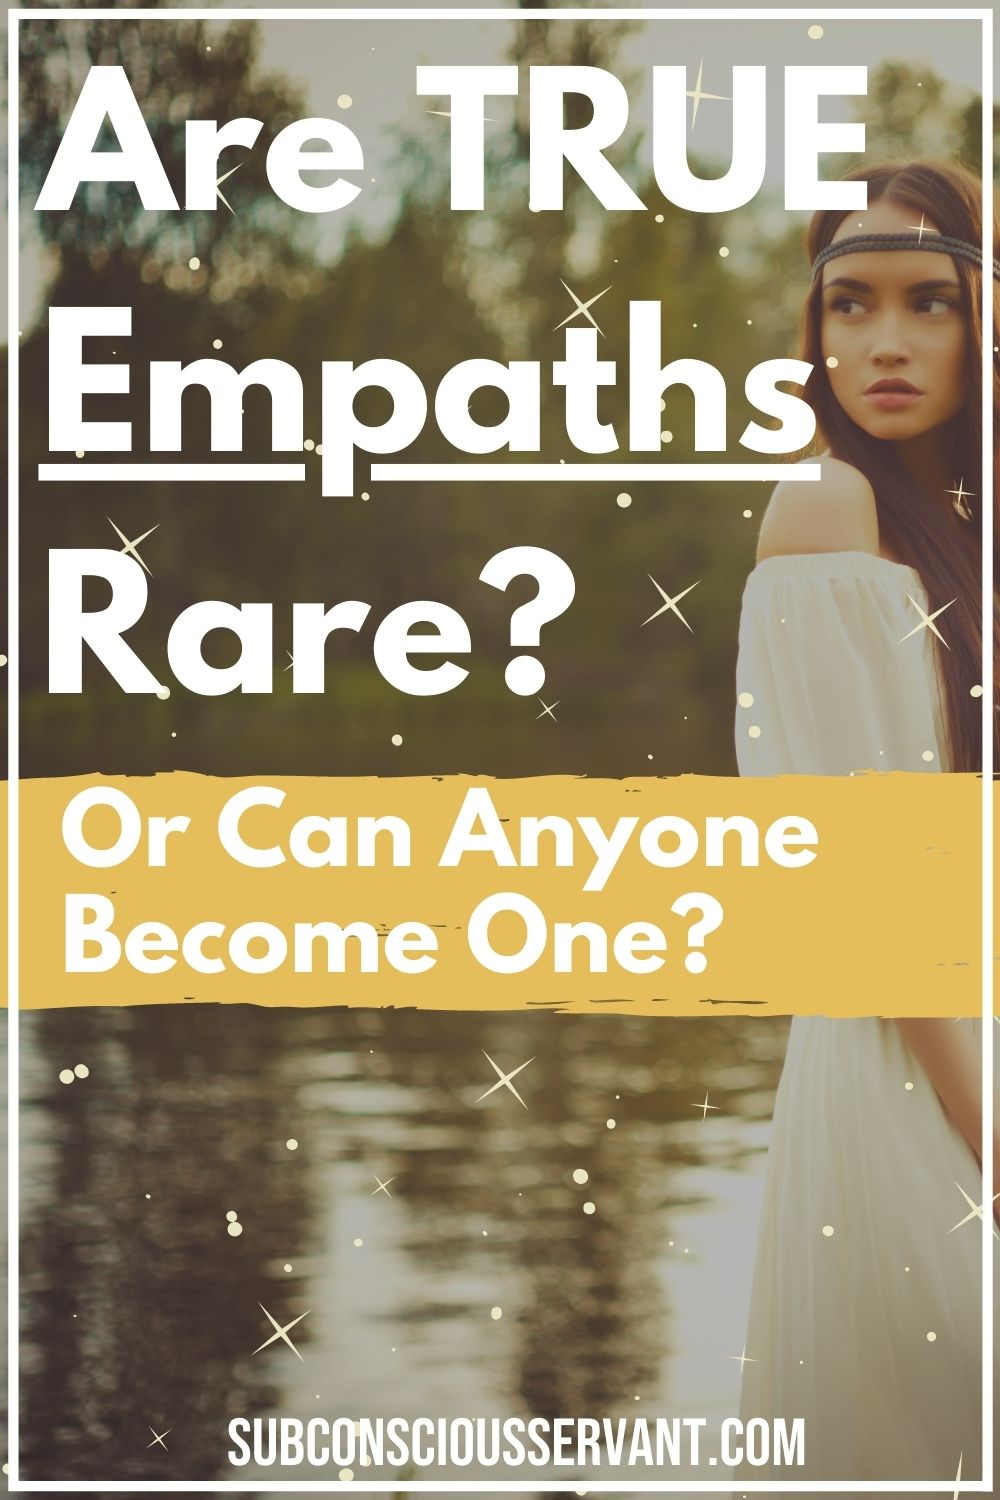 Are TRUE Empaths Rare? Or Can Anyone Become One?